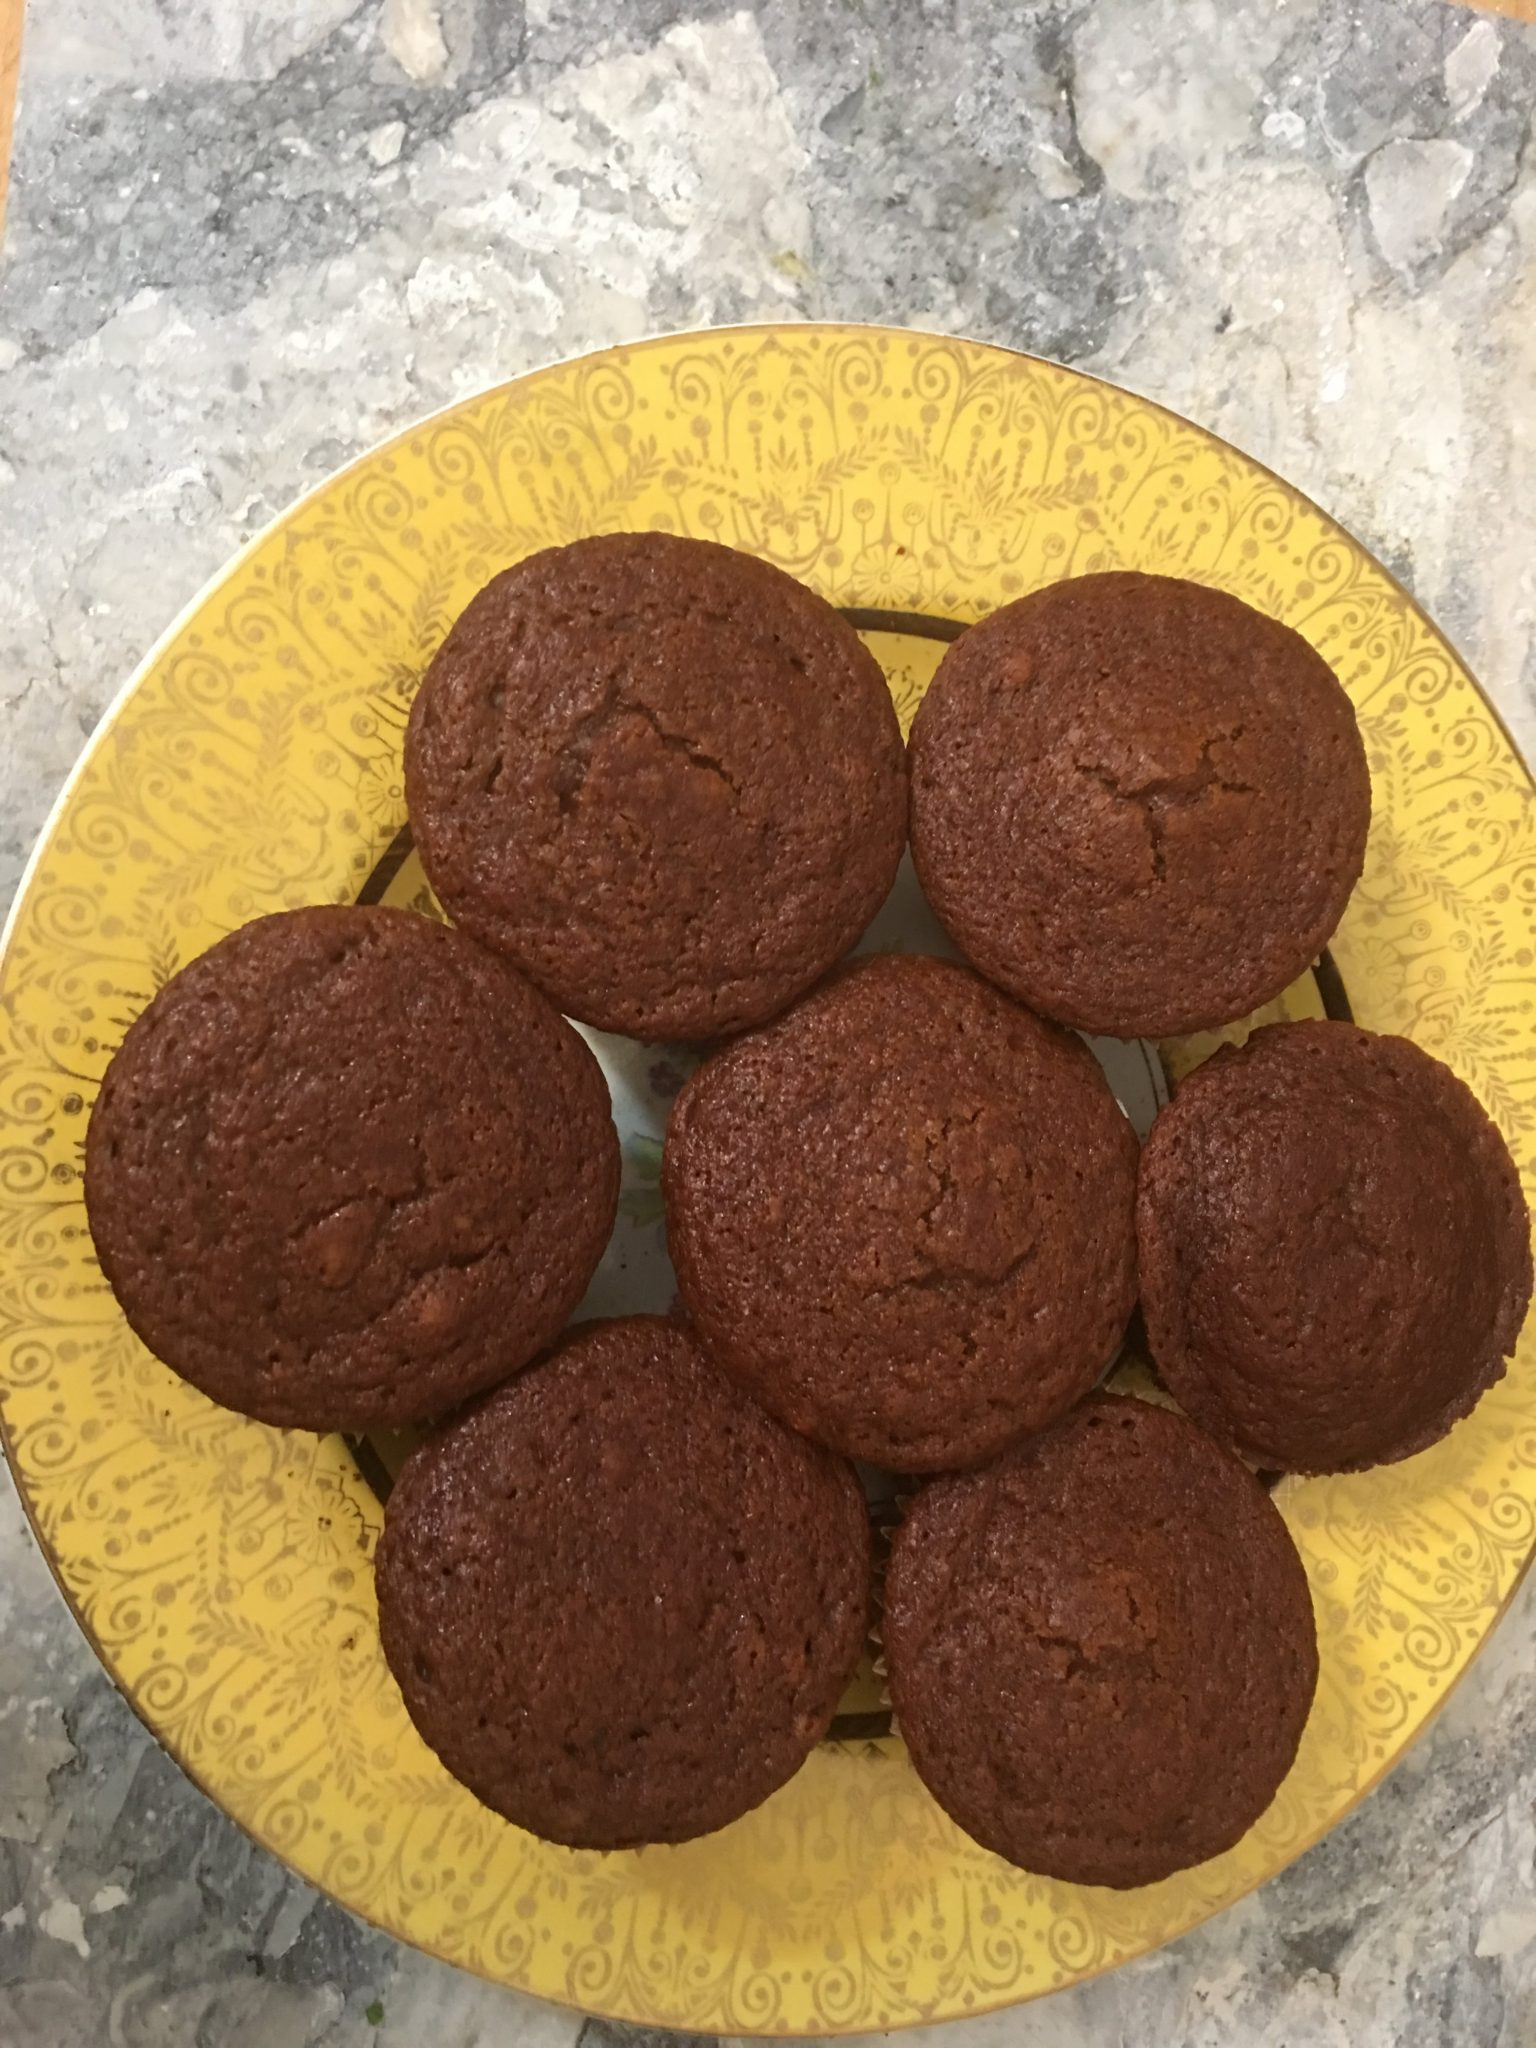 Pumpkin-Ginger Muffins on a yellow plate